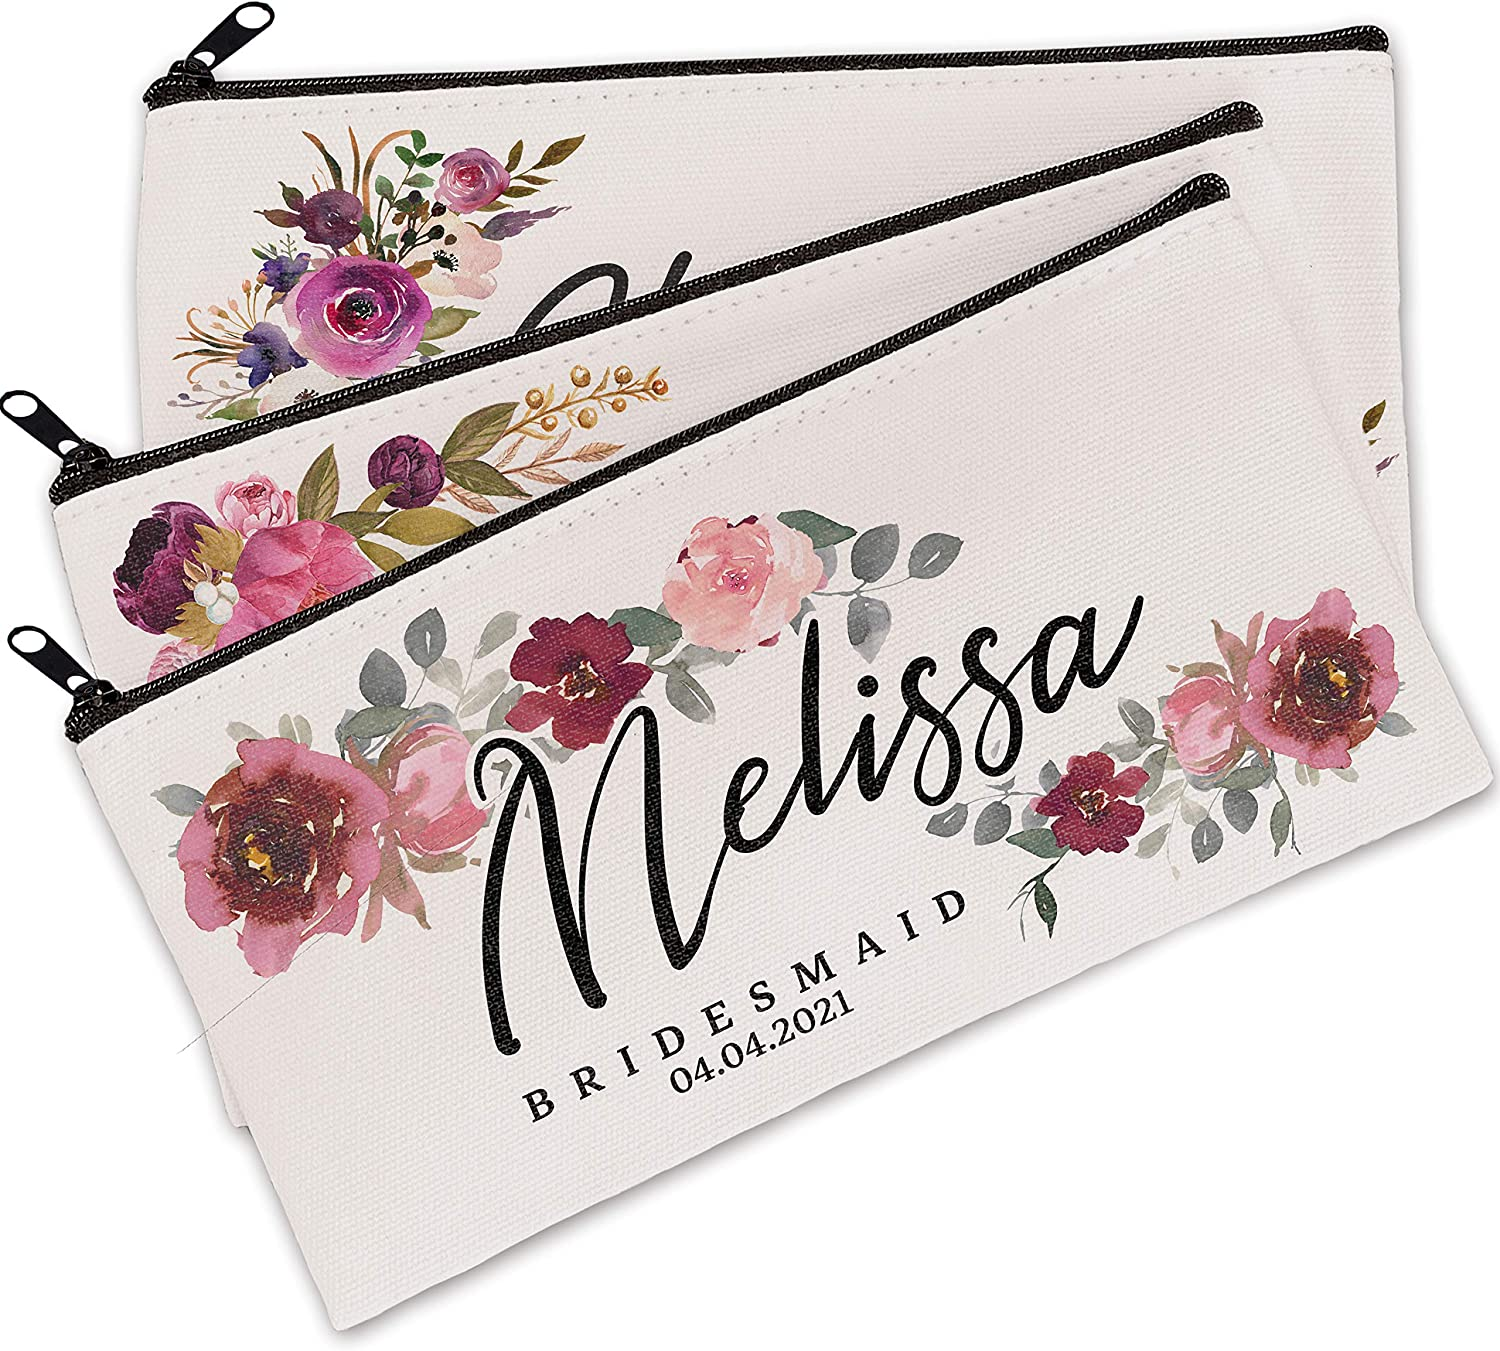 Personalized Floral Makeup Bag Save money Gifts Purchase Customized fo - Bags